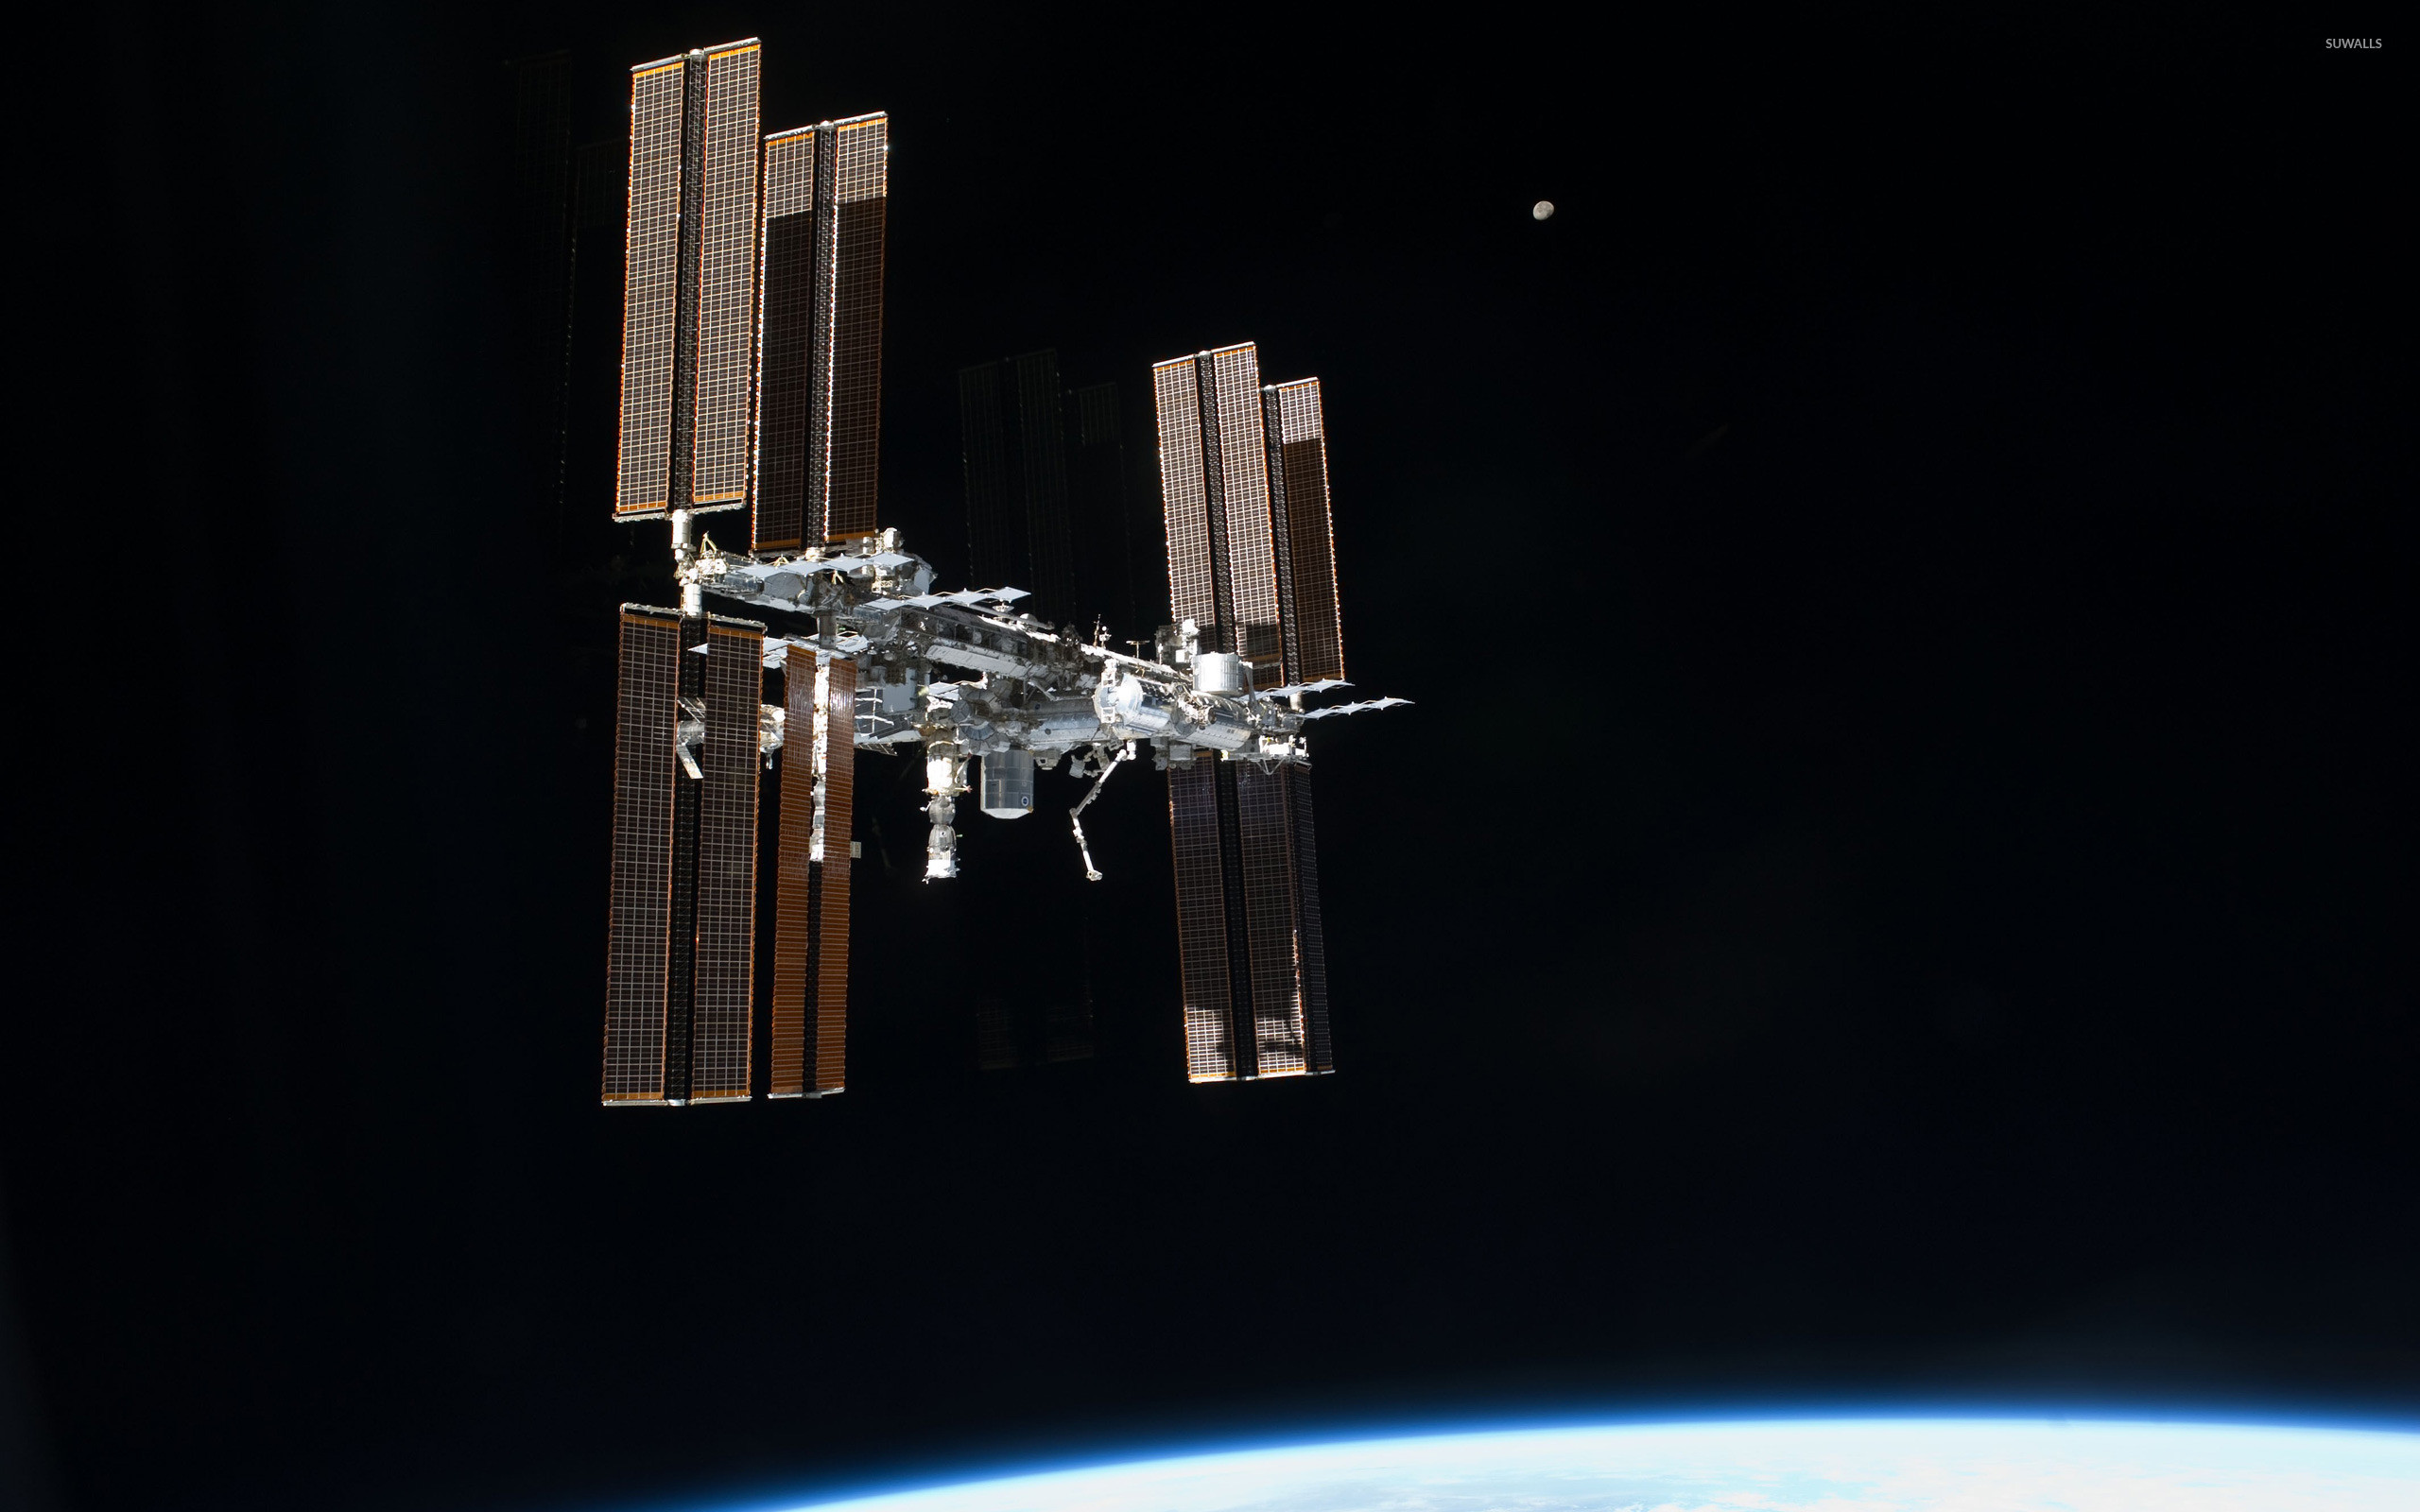 2560x1600 International Space Station [14] wallpaper  jpg